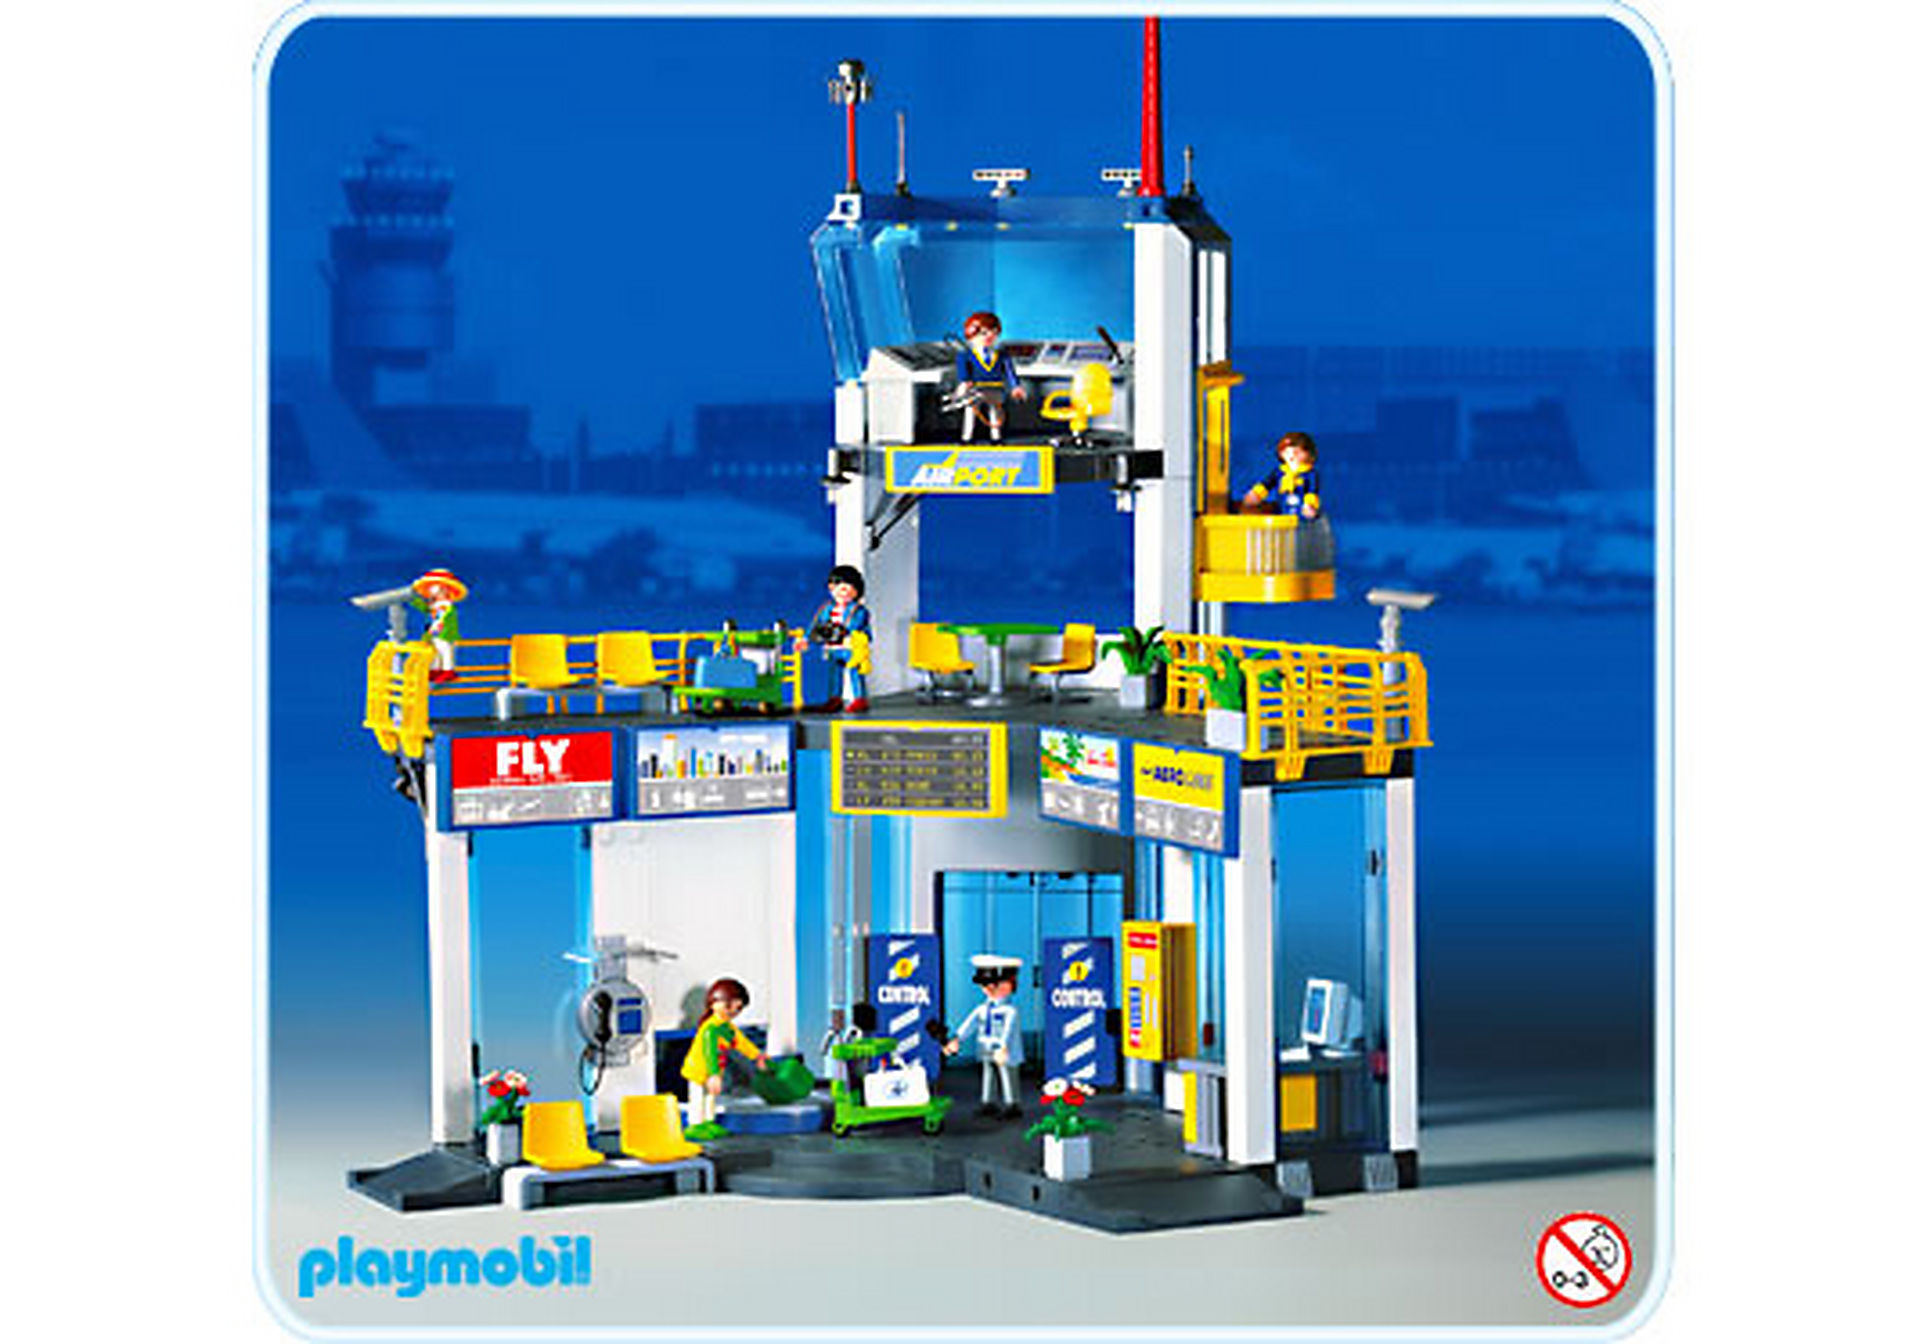 http://media.playmobil.com/i/playmobil/3186-A_product_detail/Flughafen/Tower